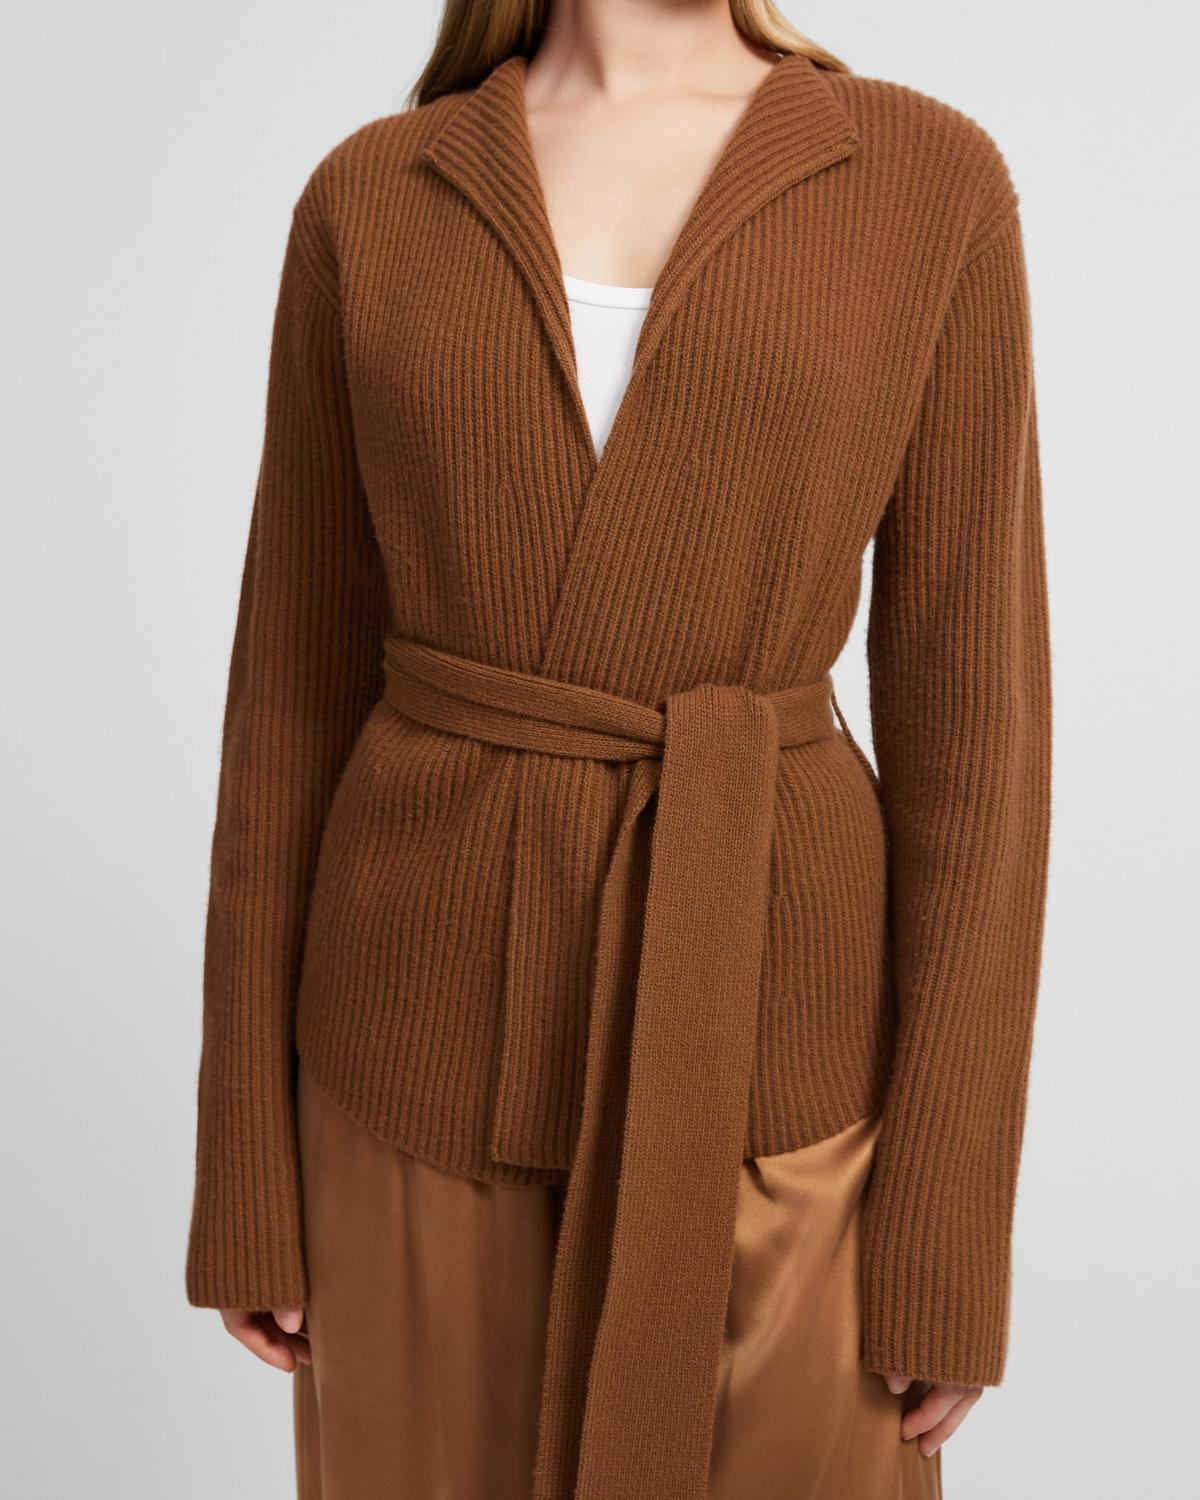 Belted Sweater Jacket in Felted Wool-Cashmere